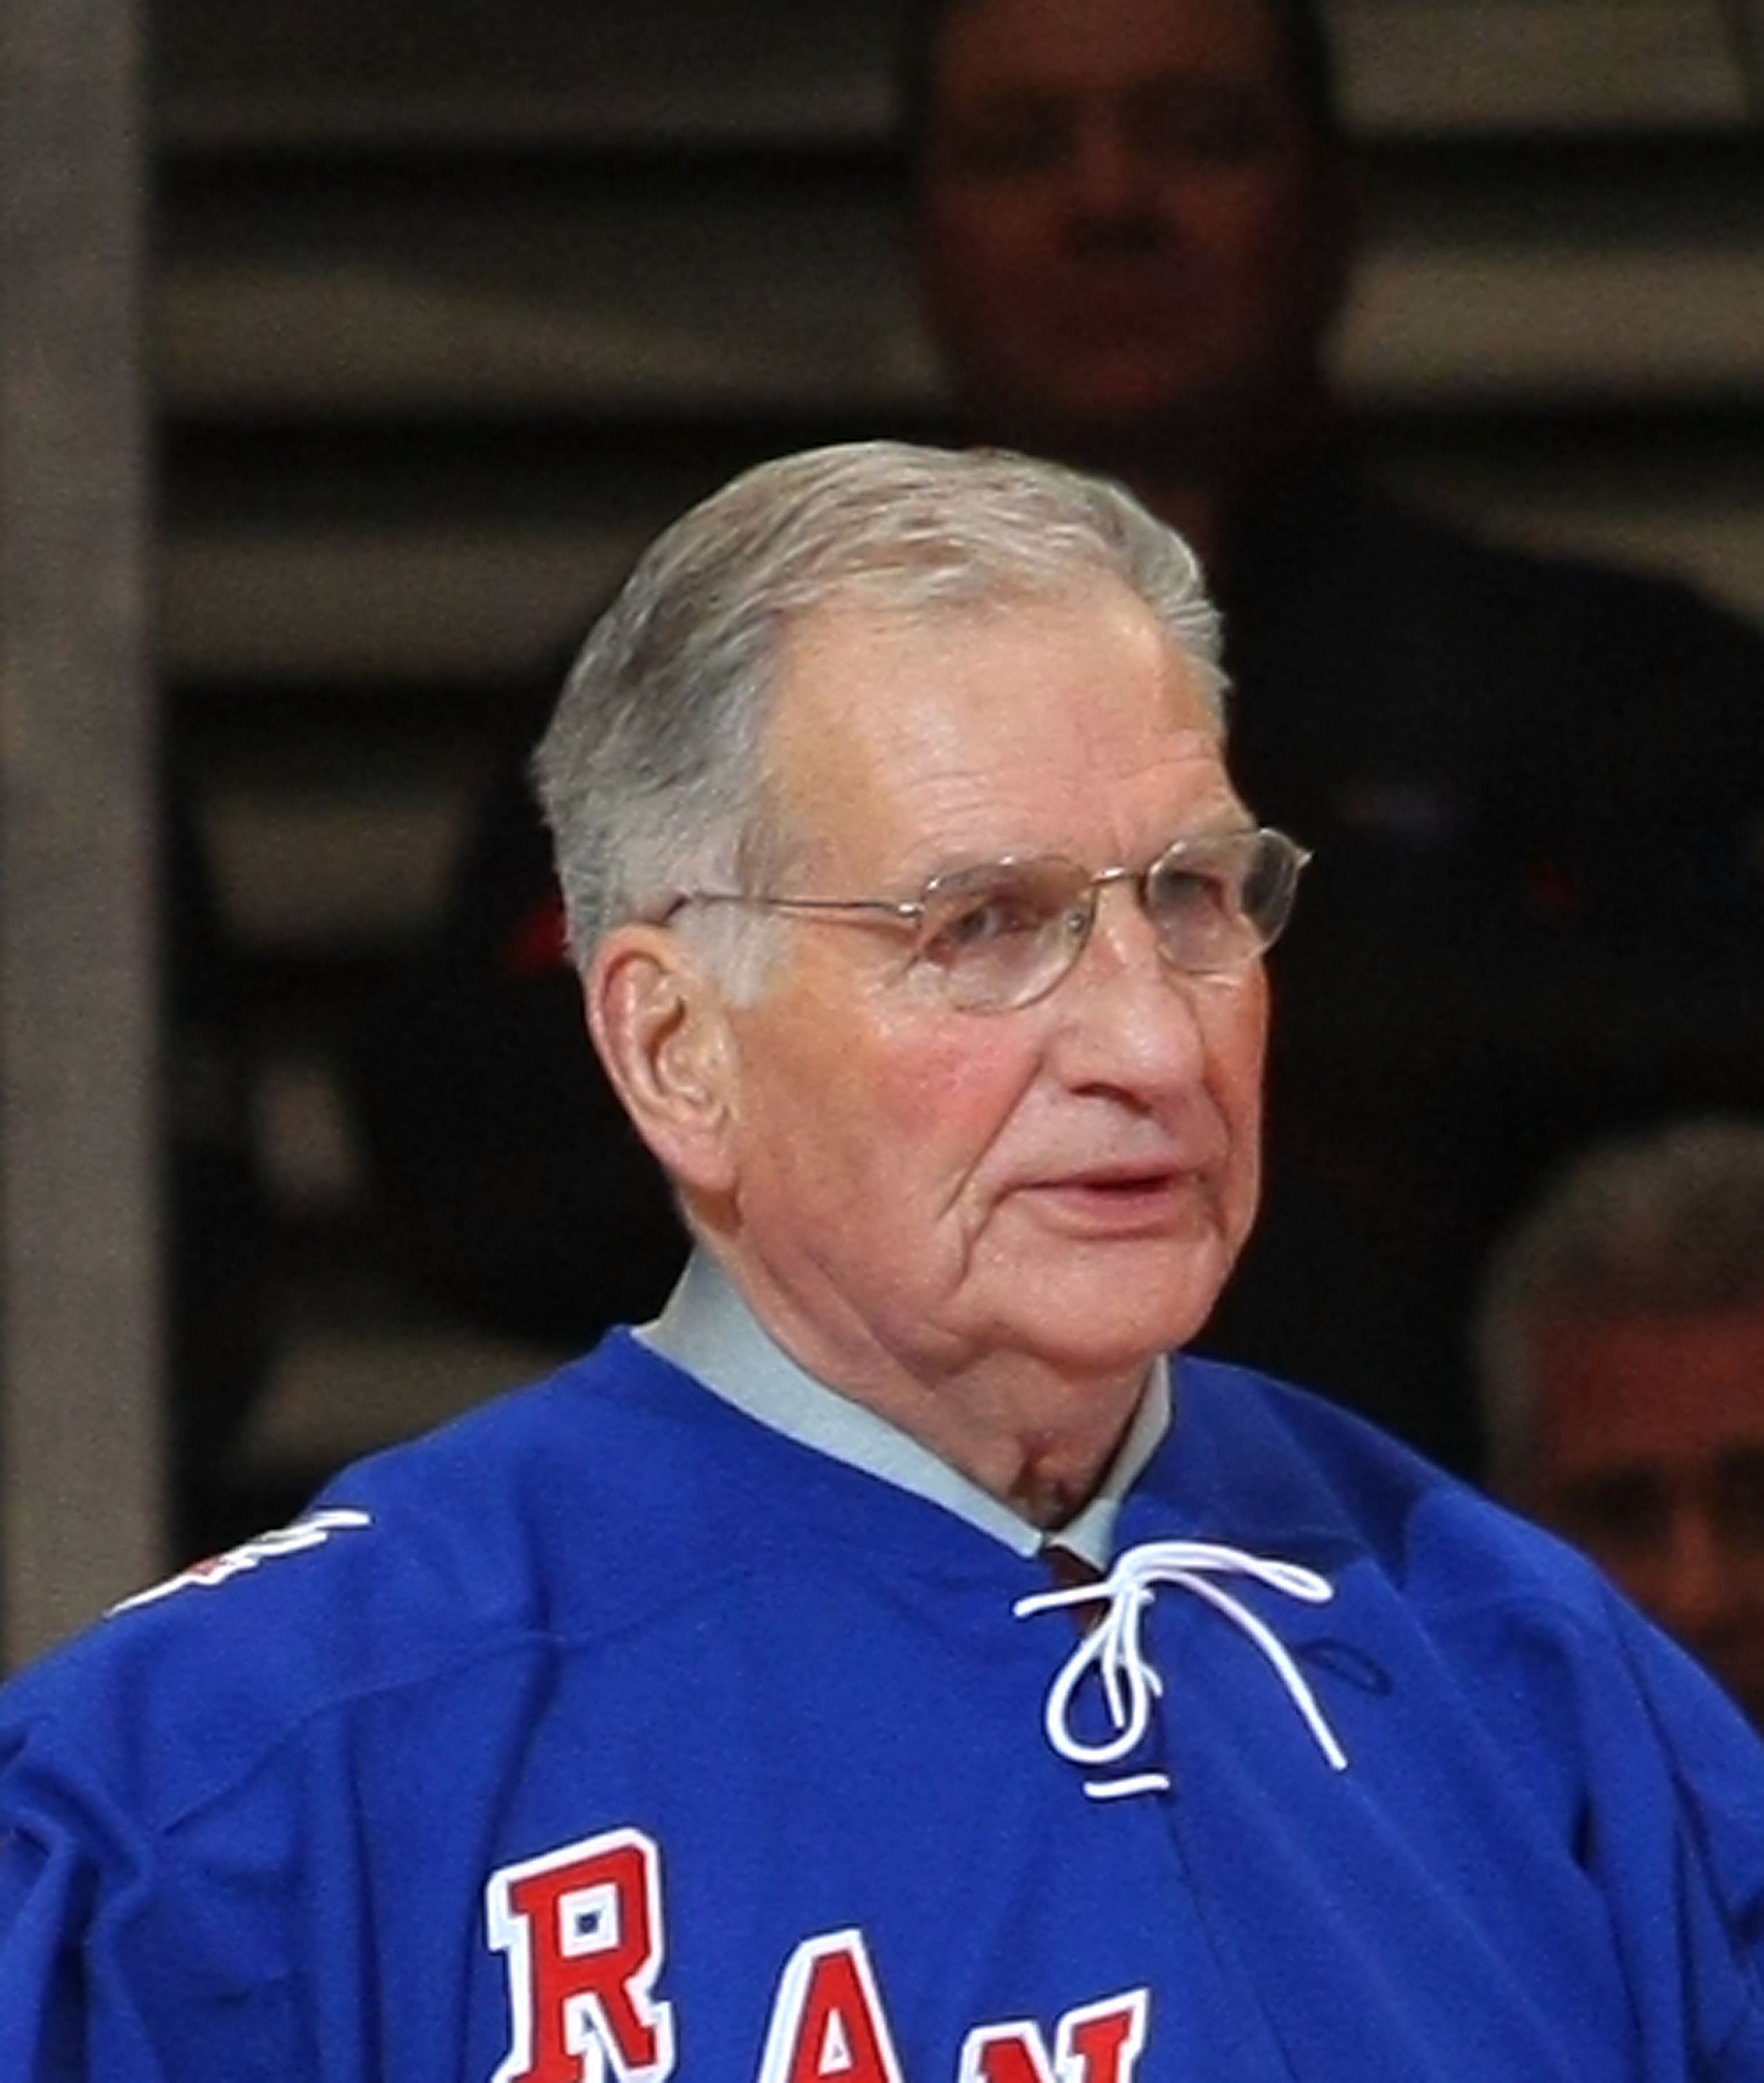 NEW YORK - FEBRUARY 22: Former New York Ranger Larry Popein attends the ceremony honoring Andy Bathgate and Harry Howell prior to the game between the Toronto Maple Leafs and the New York Rangers on February 22, 2009 at Madison Square Garden in New York C